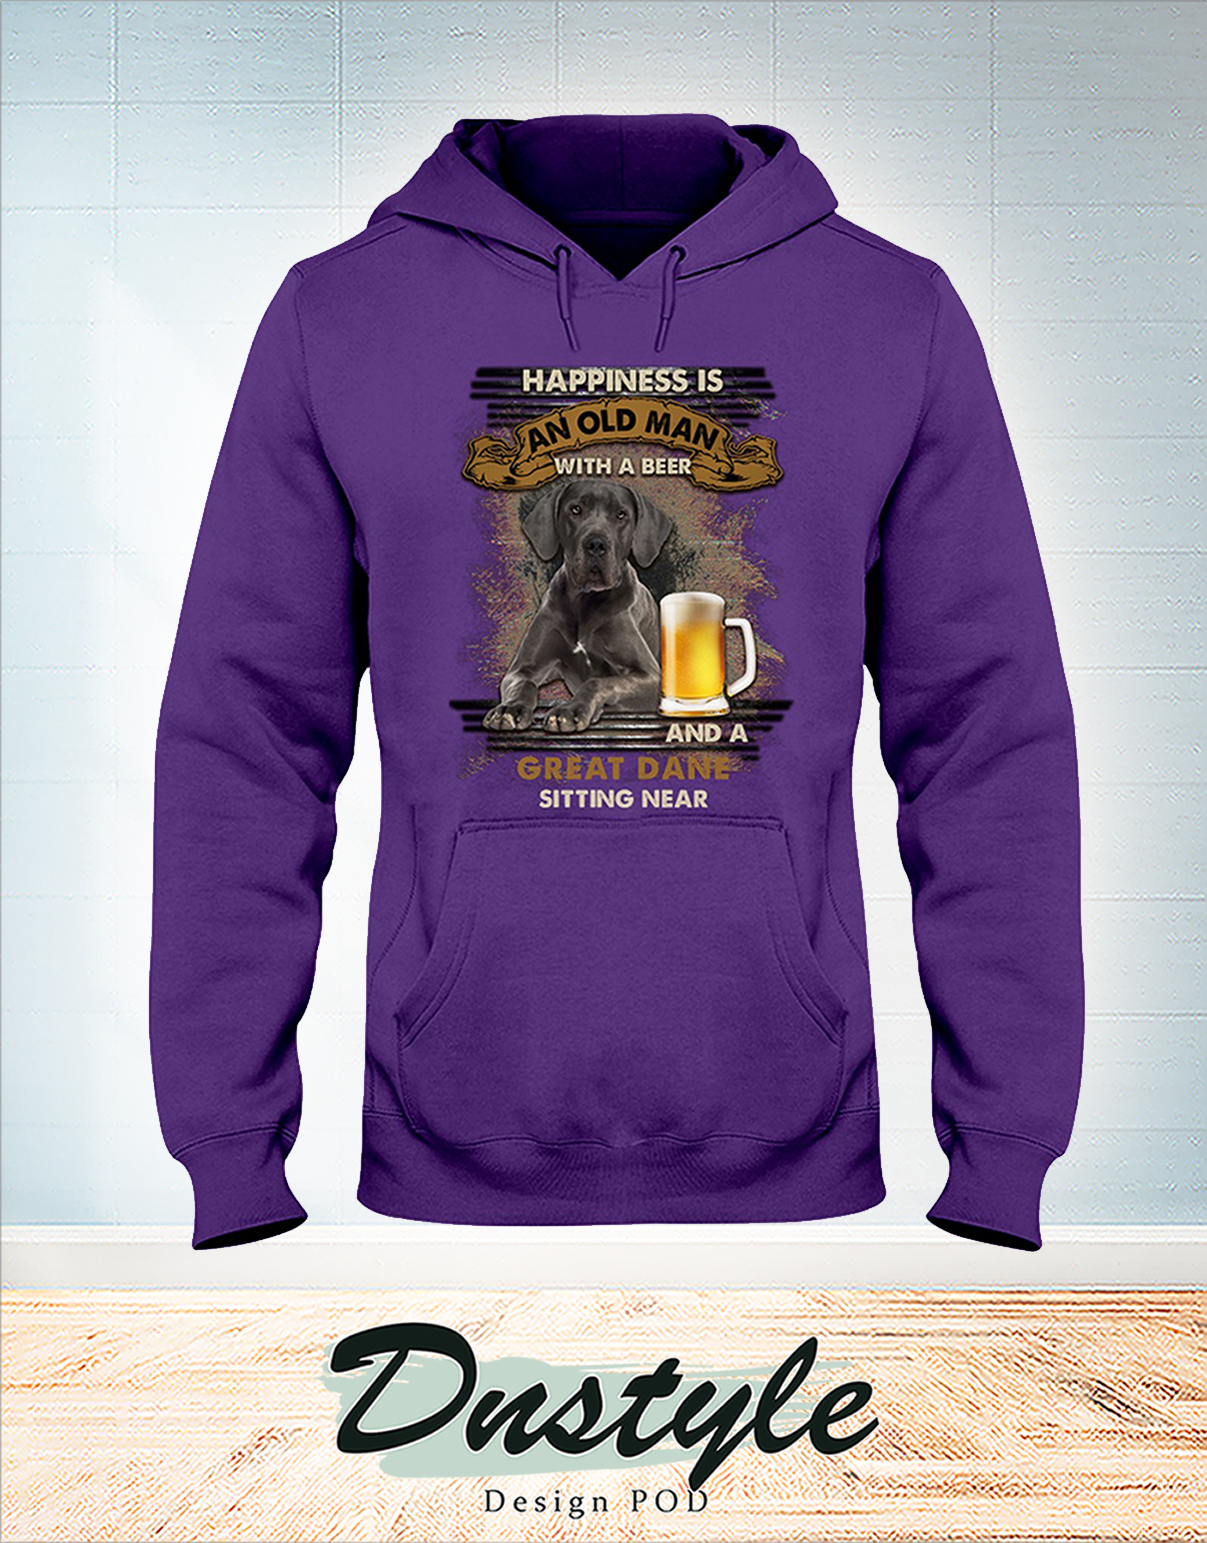 Great Dane happiness is an old man with a beer hoodie